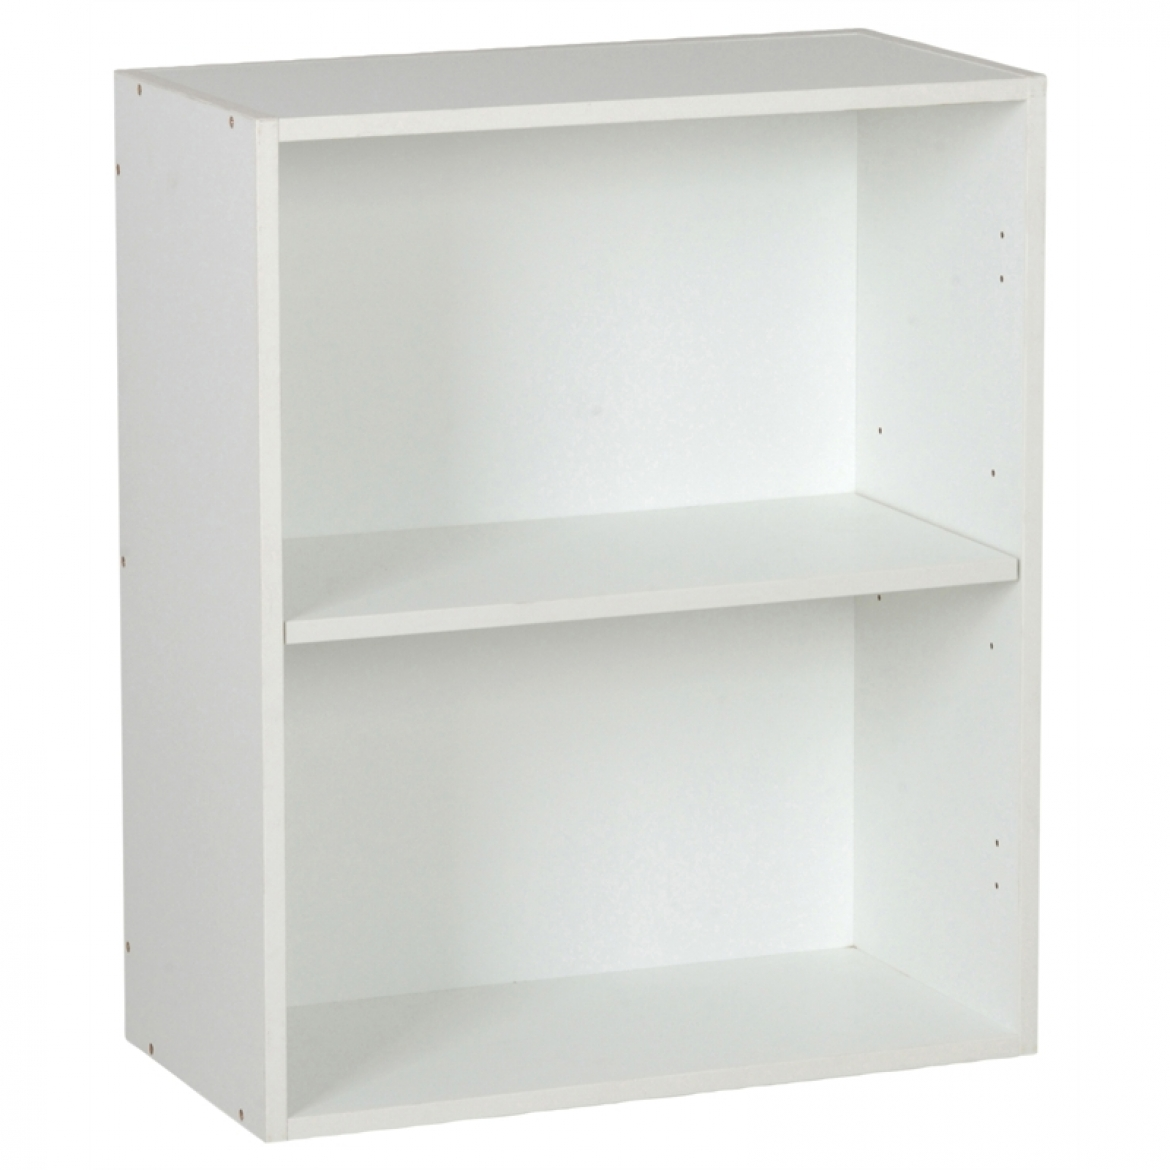 900 mm wall hung cabinet [2 door]